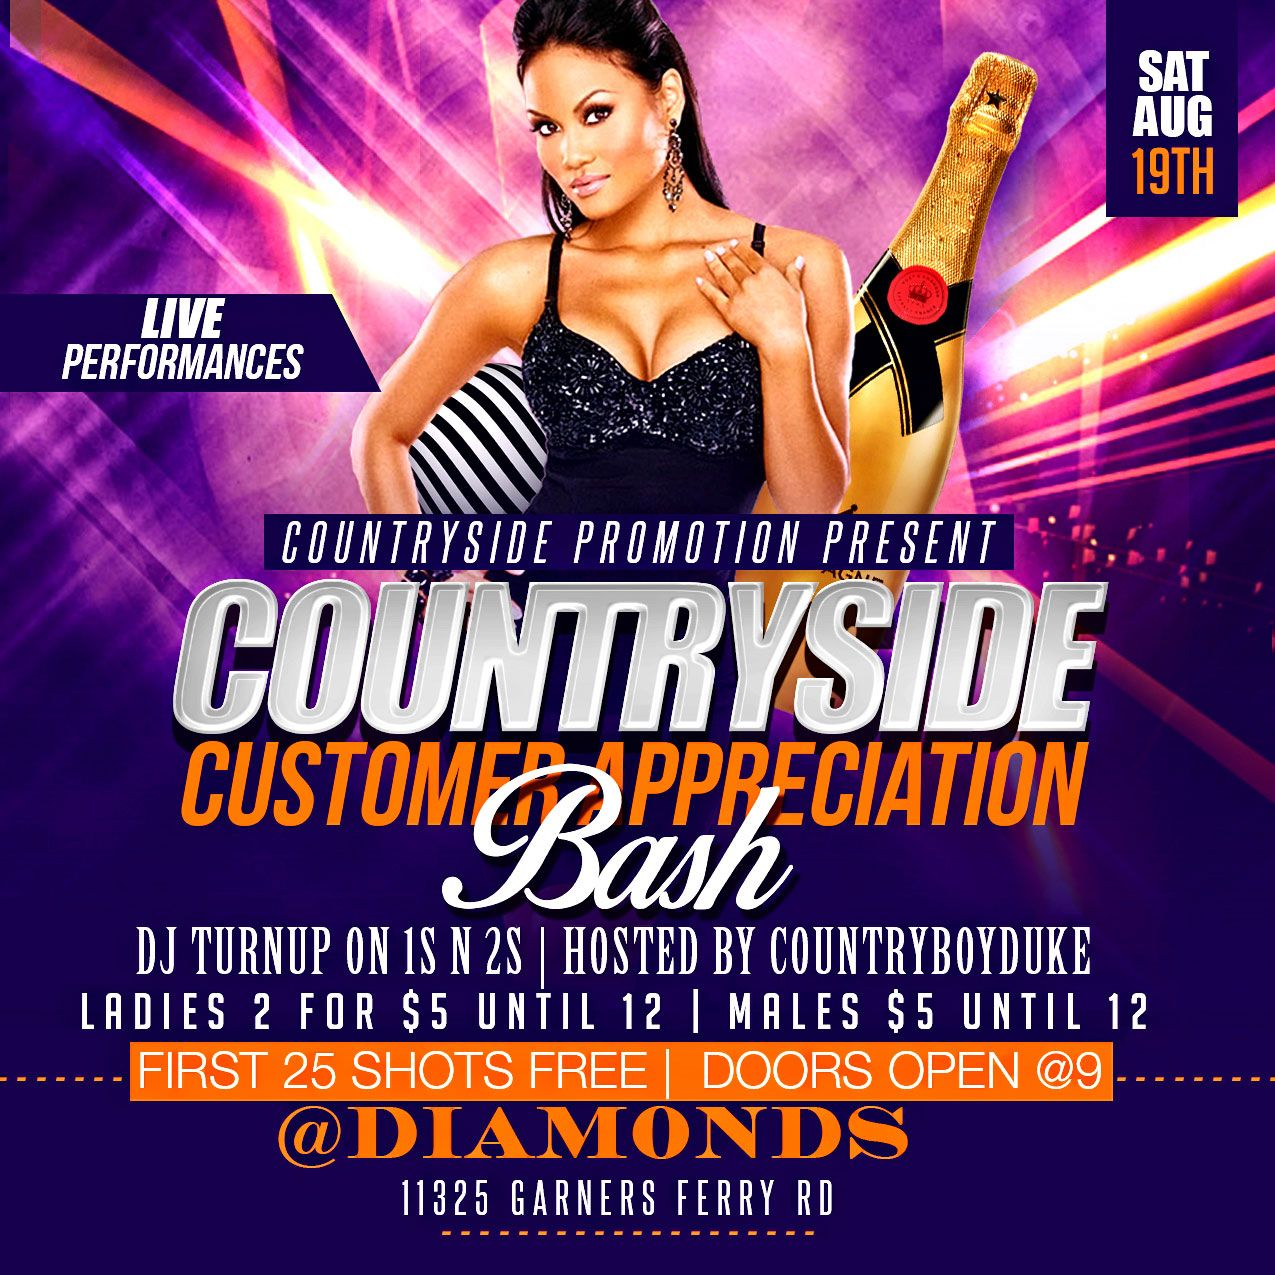 Top Flyer of the day! CountrySide Customer Appreciation